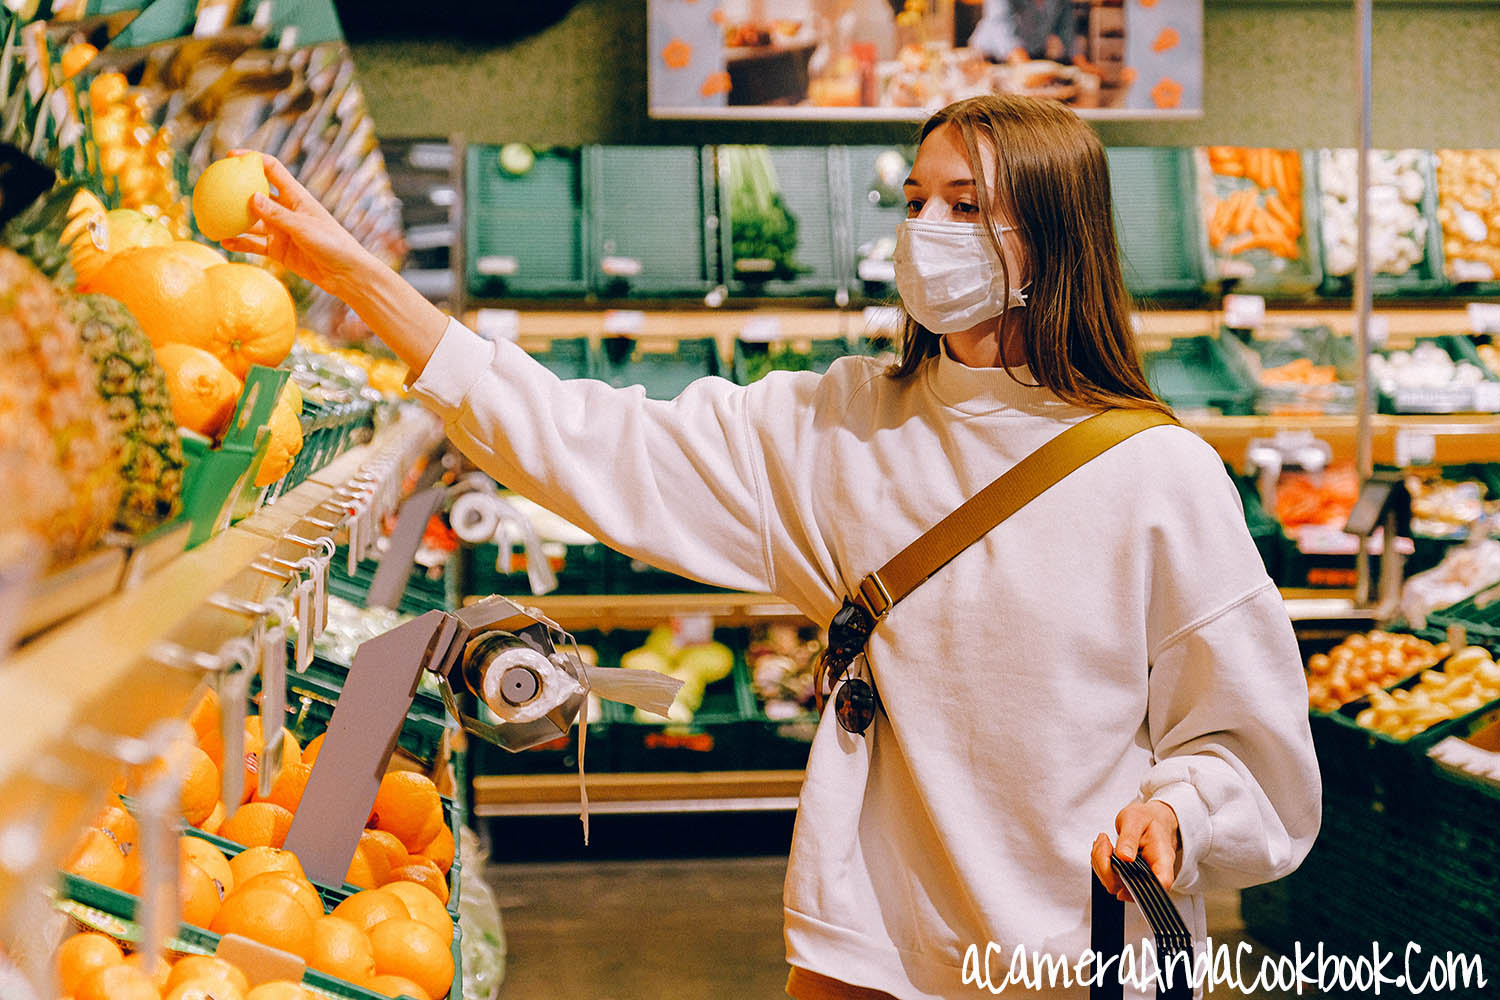 Four Ways To Reduce Your Risk When Grocery Shopping